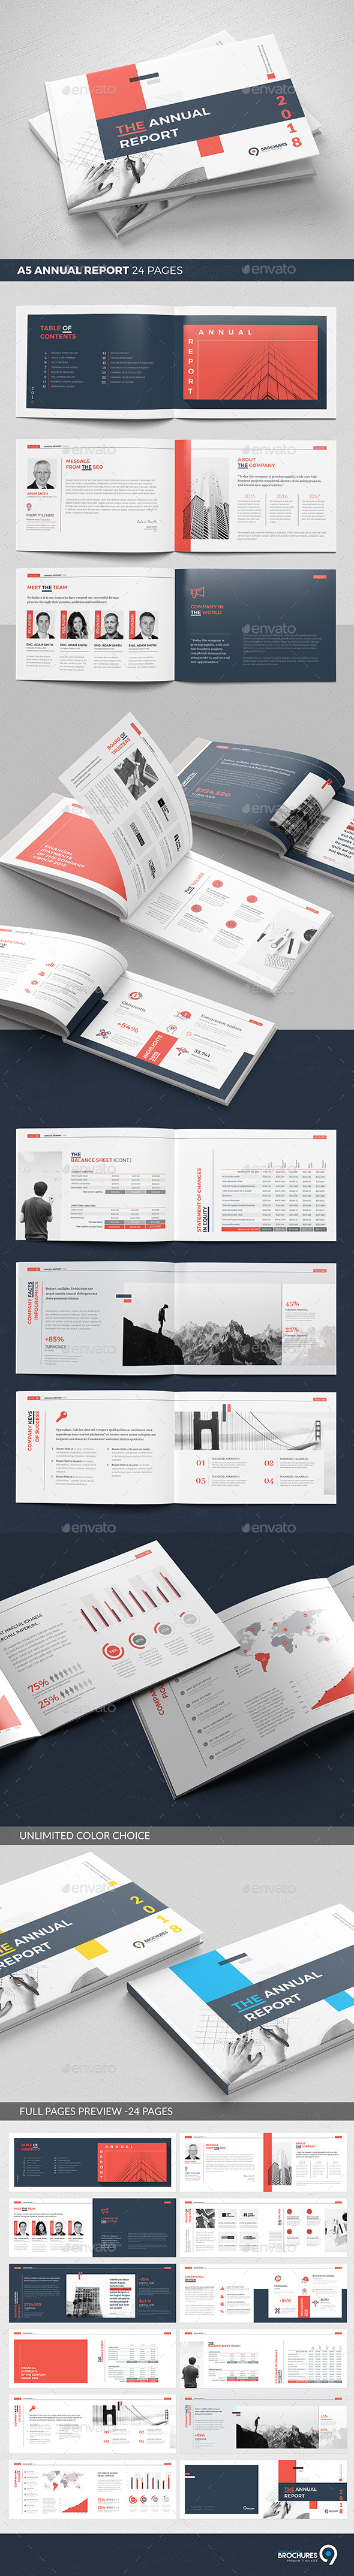 A5 Landscape Annual Report - Corporate Brochures